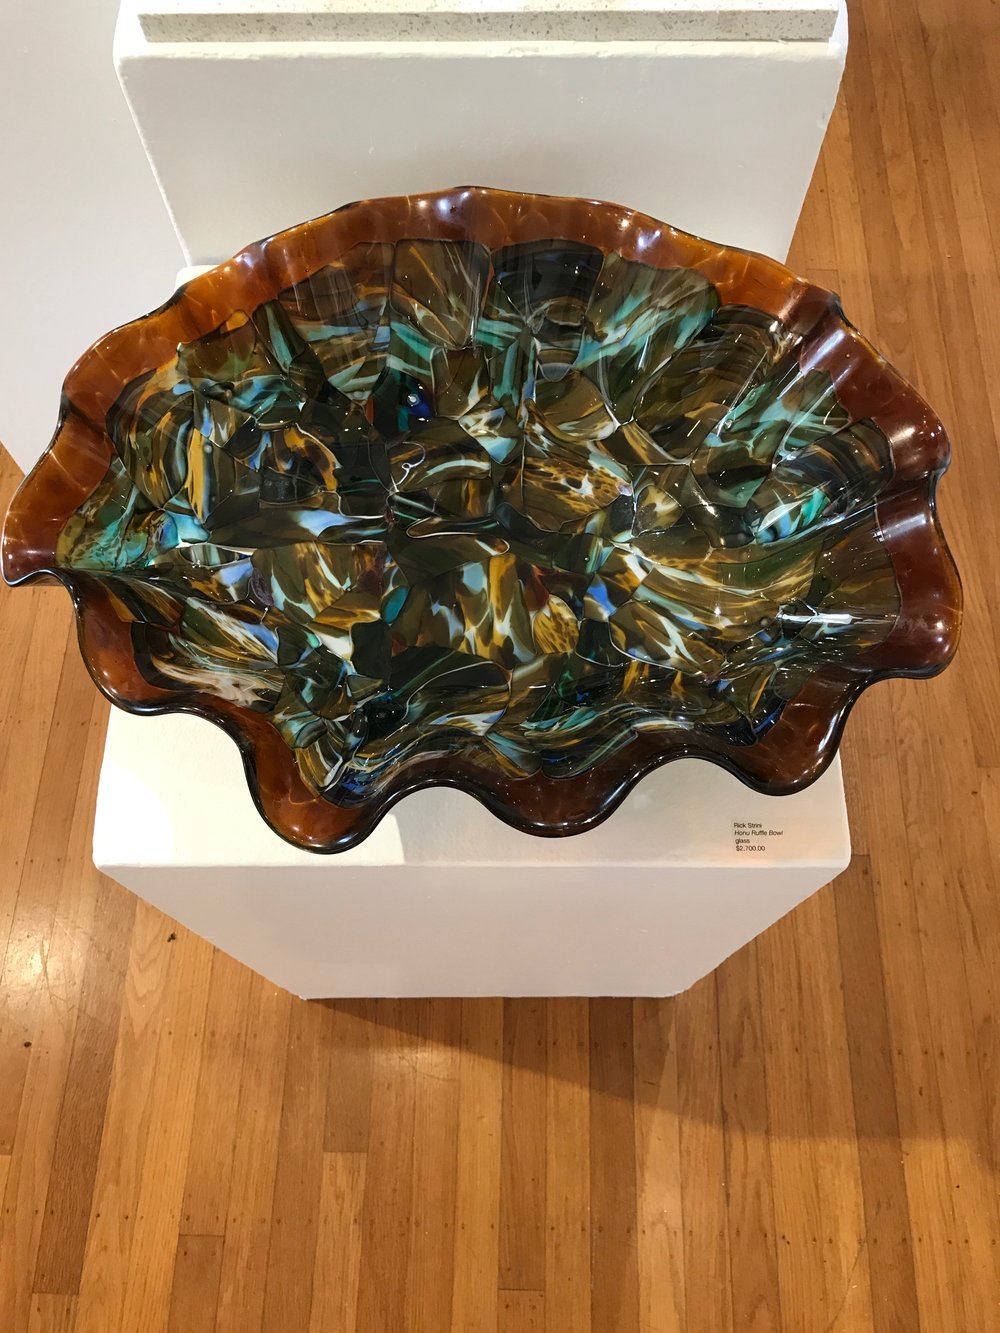 strini ruffled Honu bowl .jpg